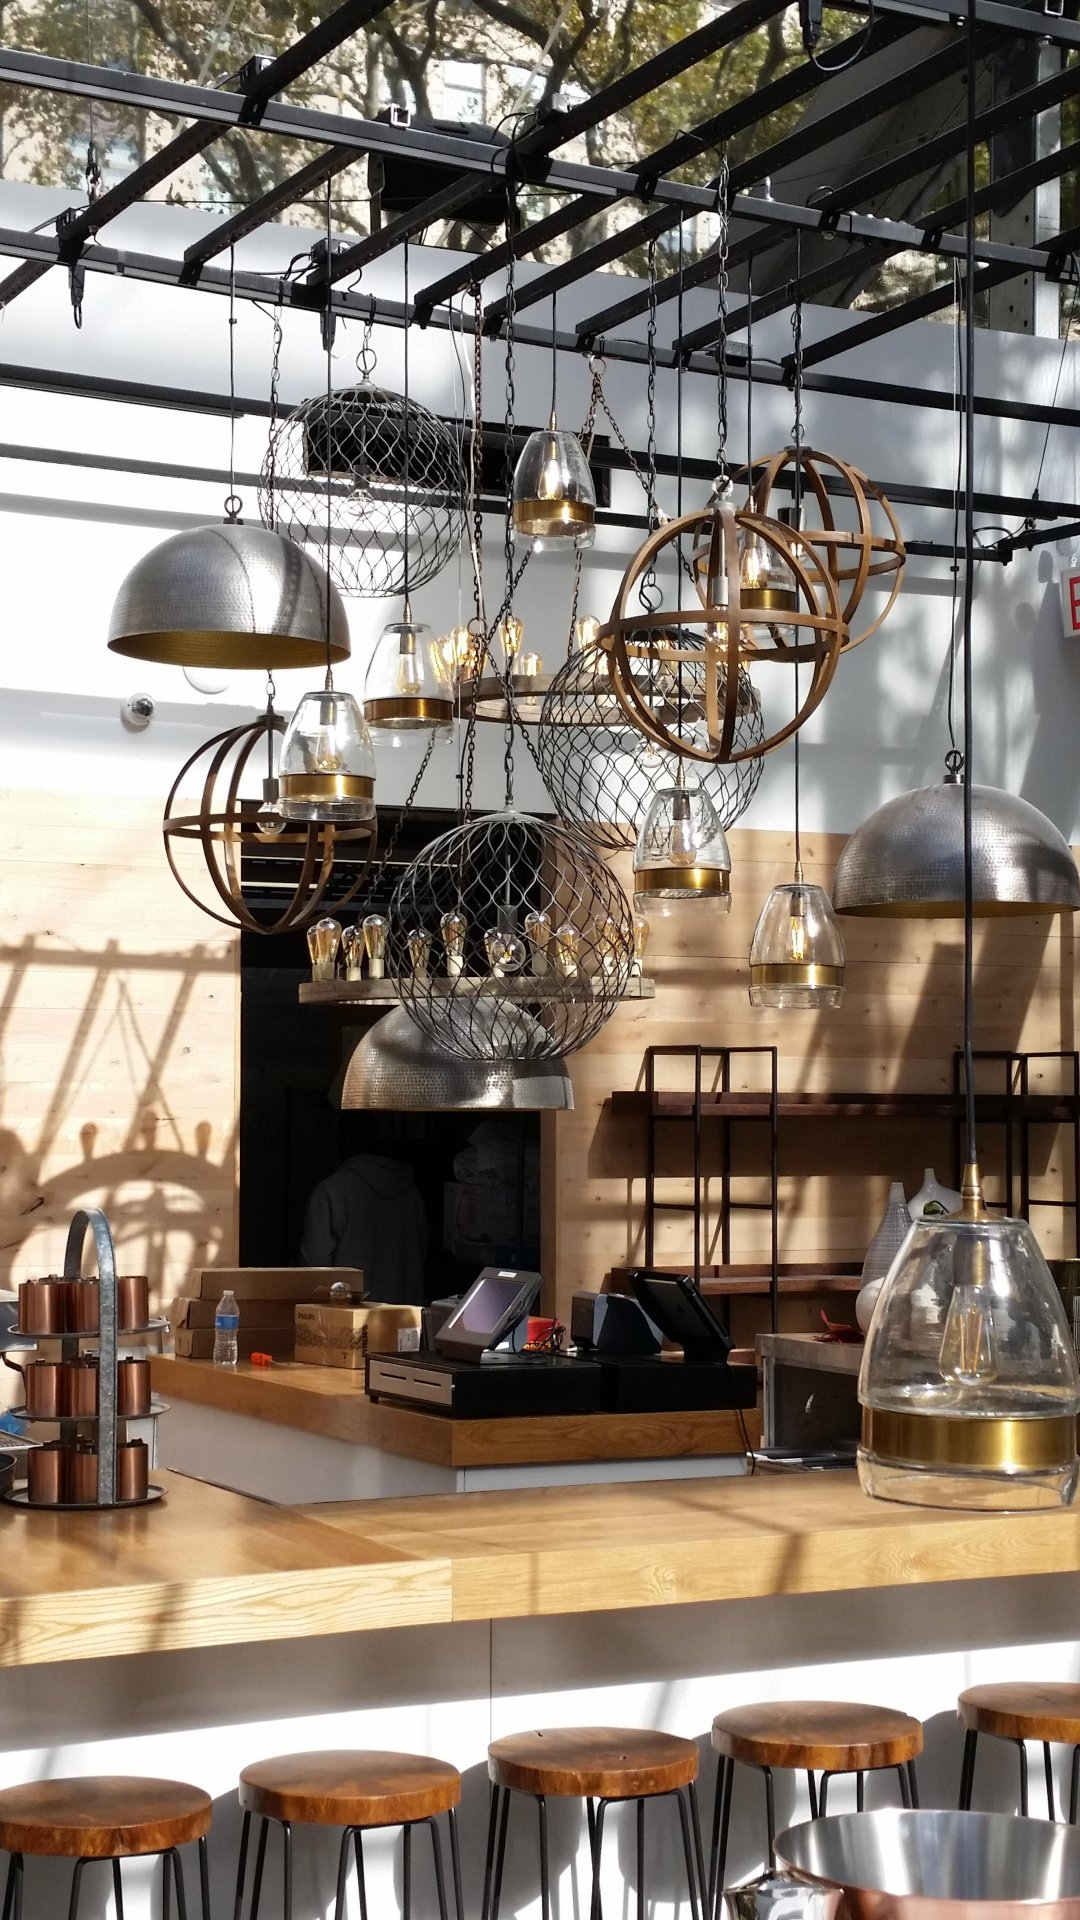 Wooden bar and wood and metal bar stools under a cluster of pendant lights at Public Fare Bryant Park